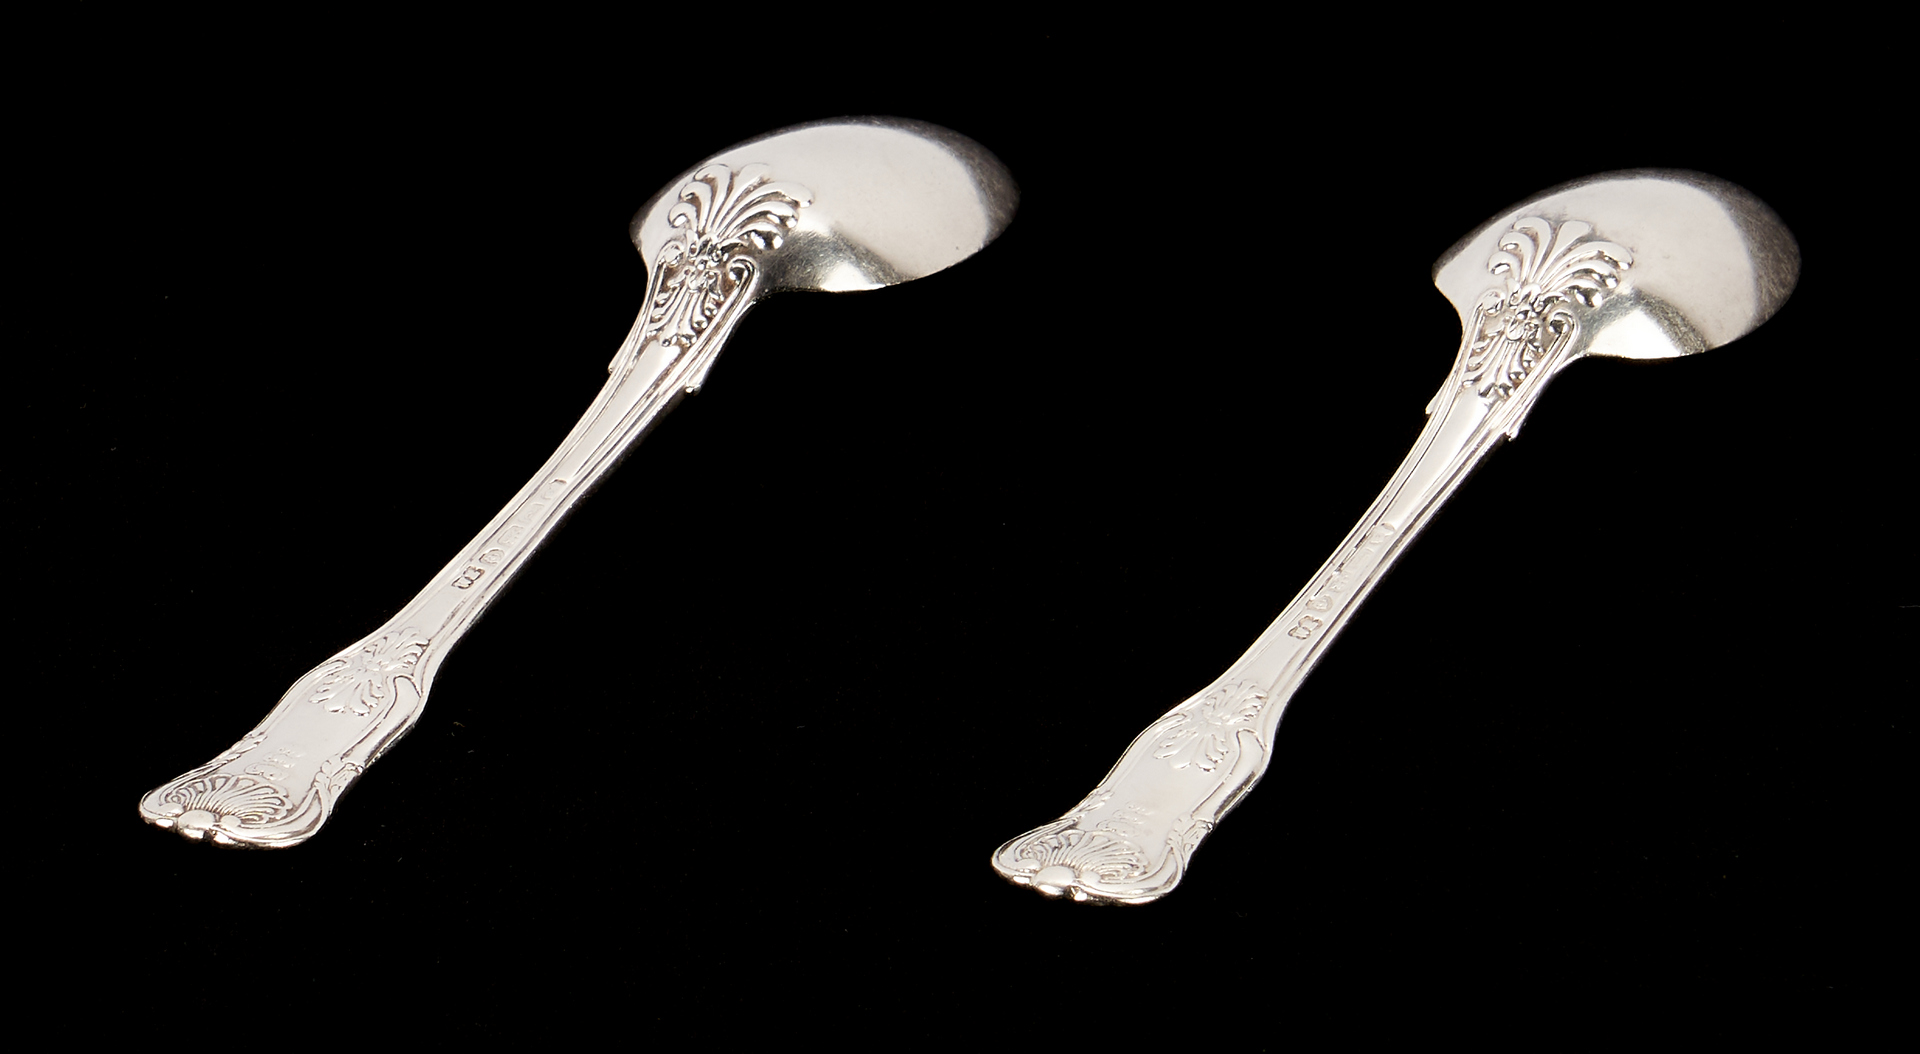 Lot 291: 7 English Shell Spoons, 1 Coin Spoon, 1 Inkwell, 9 items